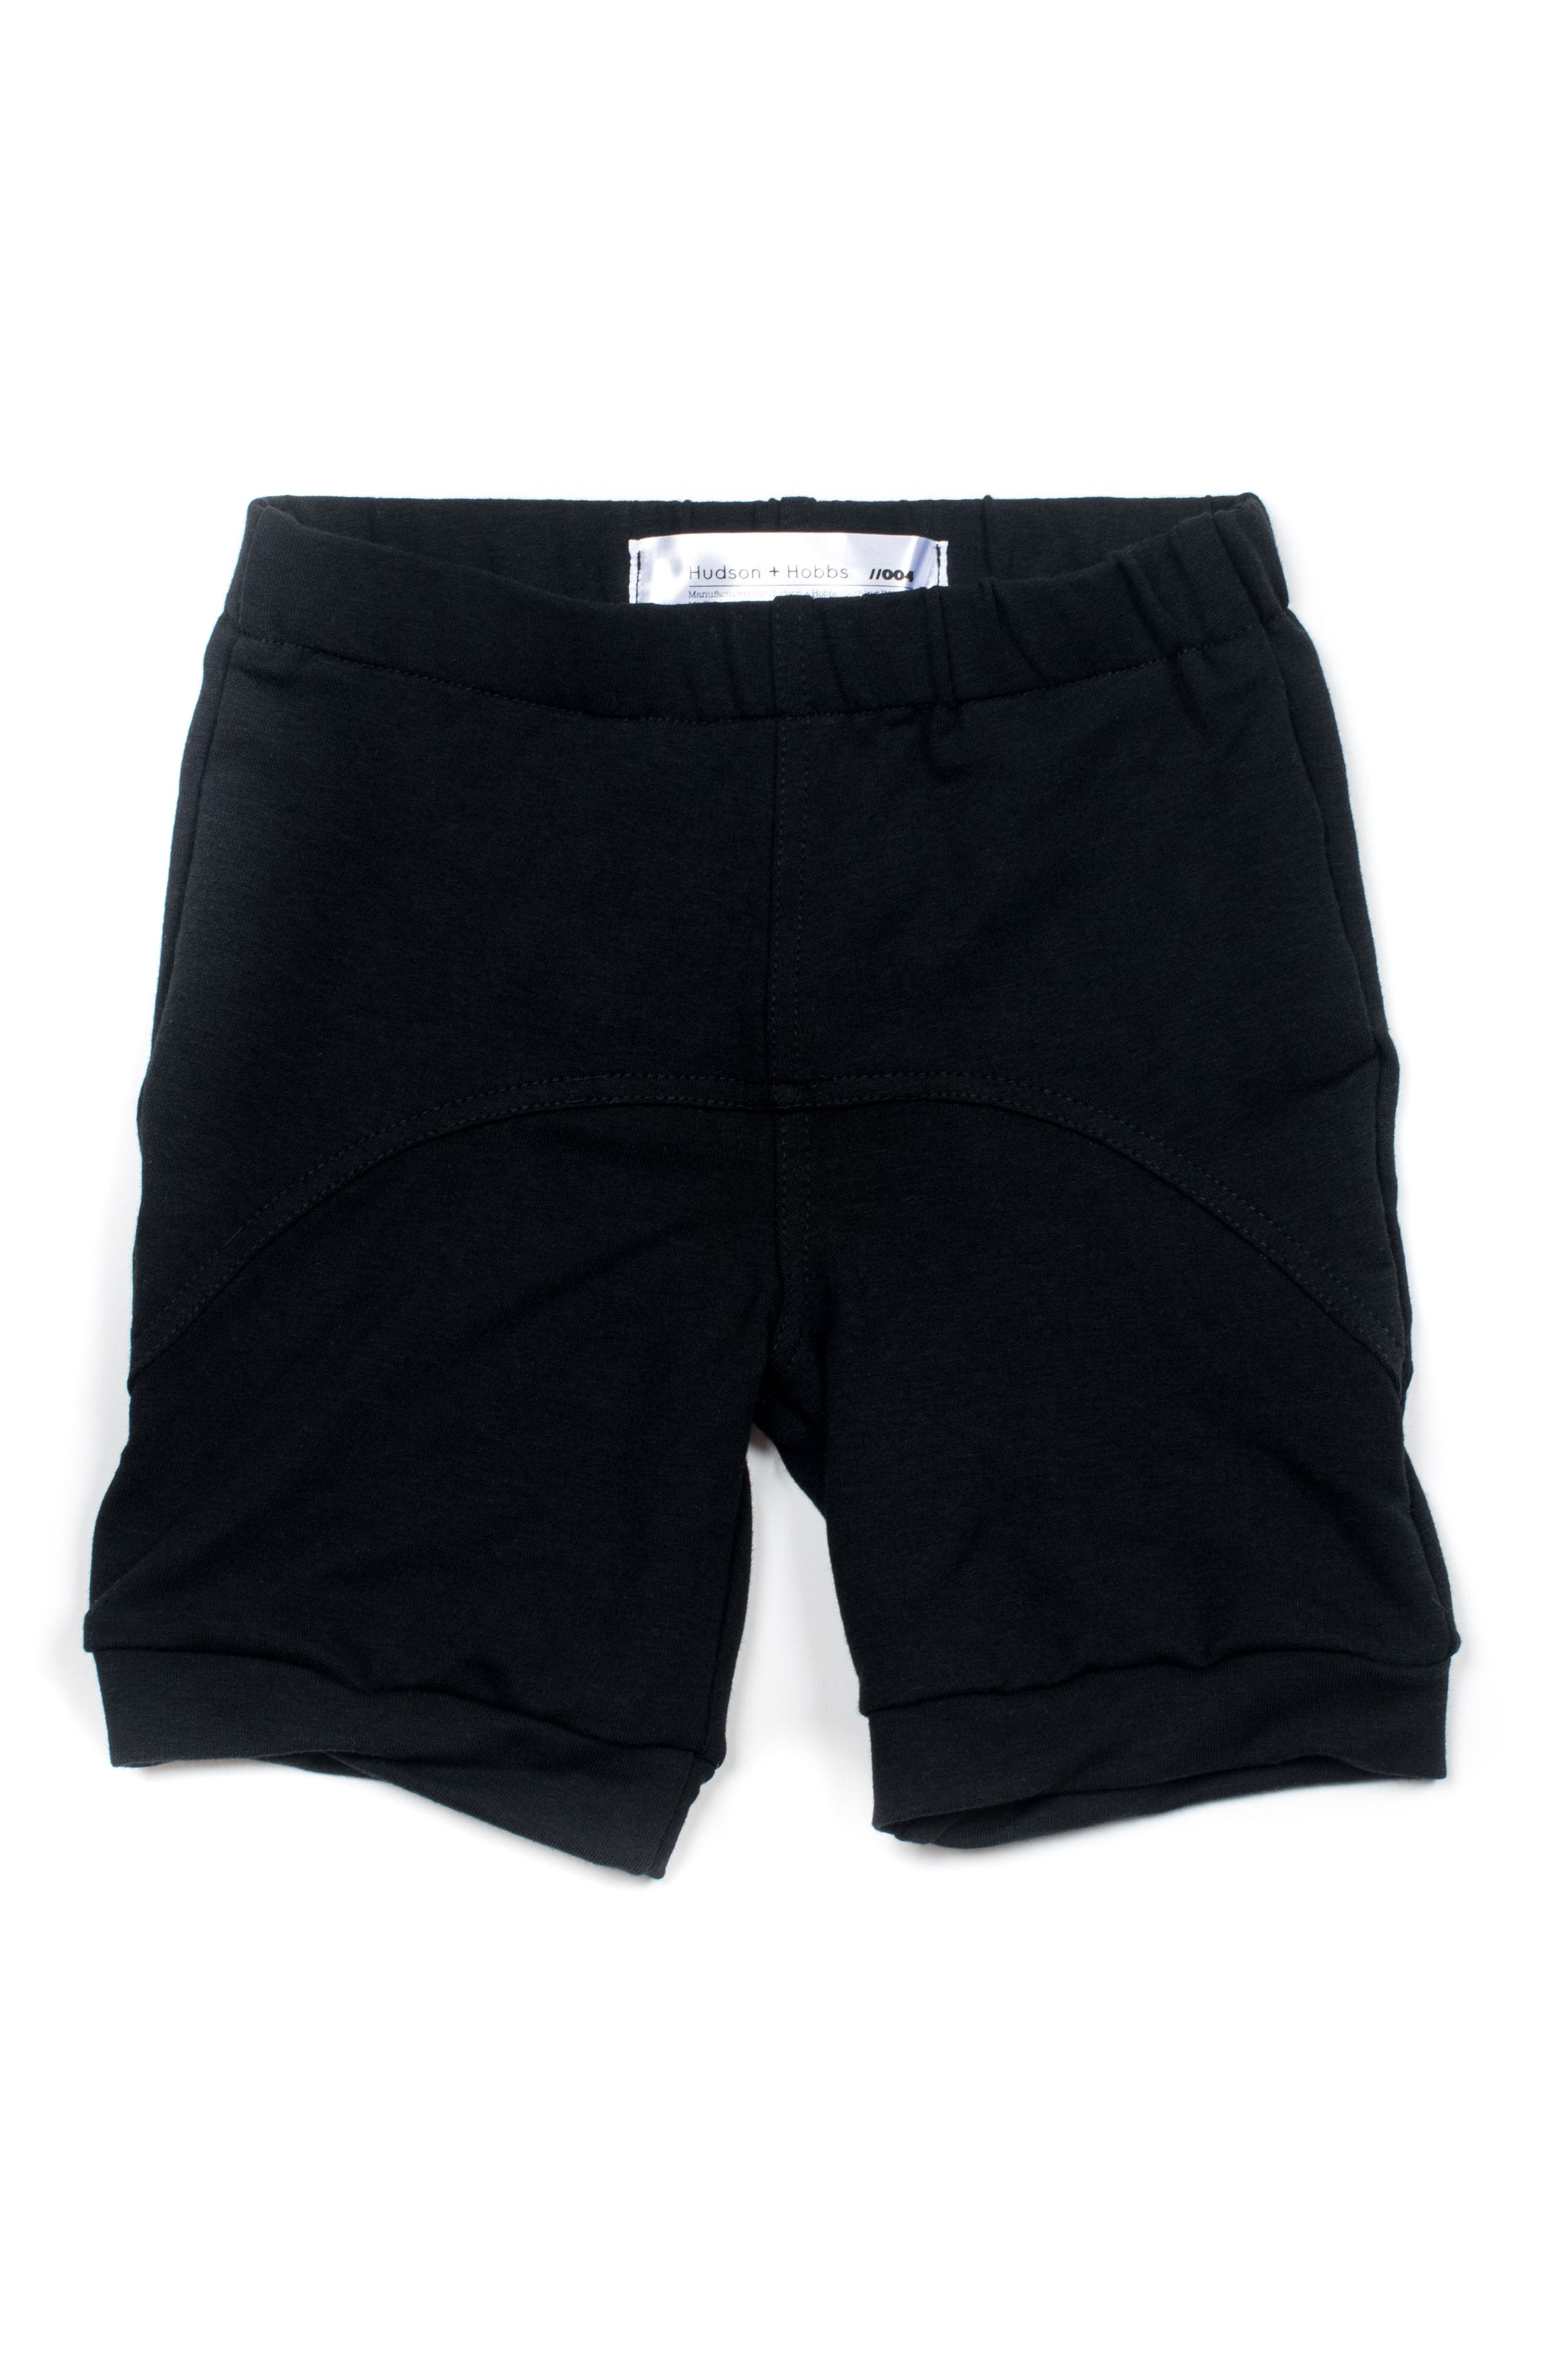 Two-Panel Shorts,                         Main,                         color,